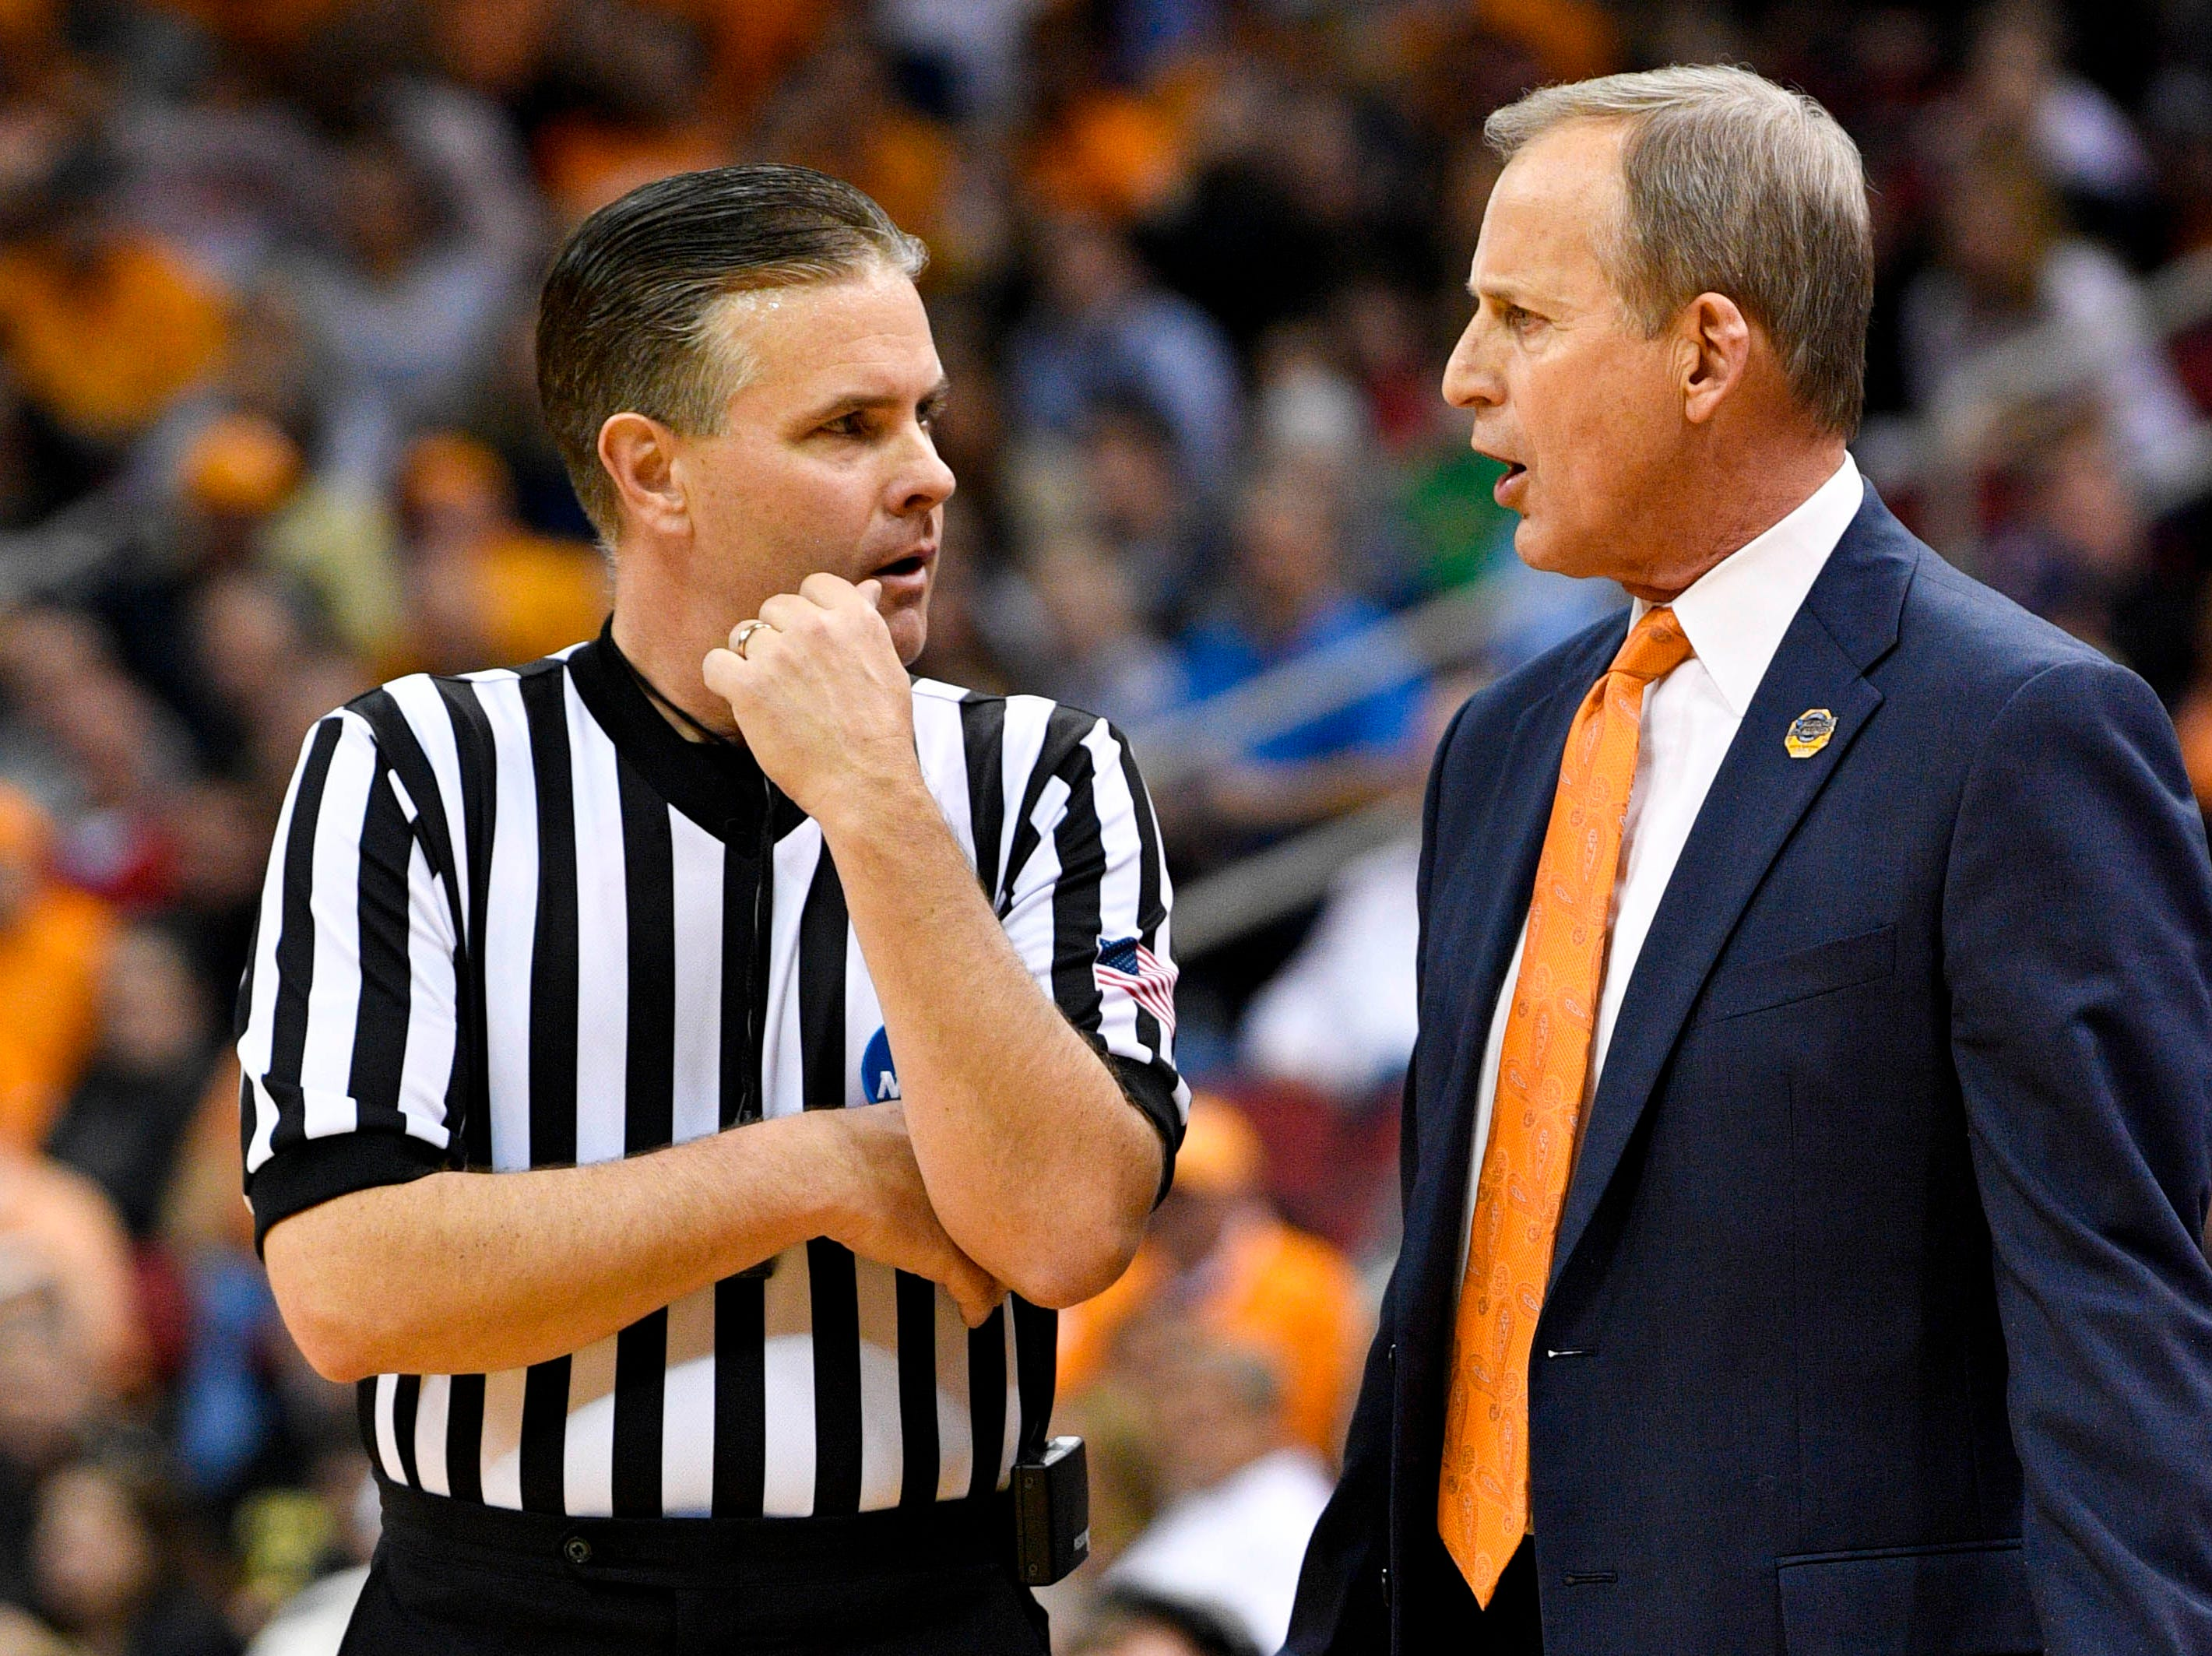 Mar 28, 2019; Louisville, KY, United States; Tennessee Volunteers head coach Rick Barnes speaks to an official during the first half in the semifinals of the south regional against the Purdue Boilermakers of the 2019 NCAA Tournament at KFC Yum Center. Mandatory Credit: Jamie Rhodes-USA TODAY Sports